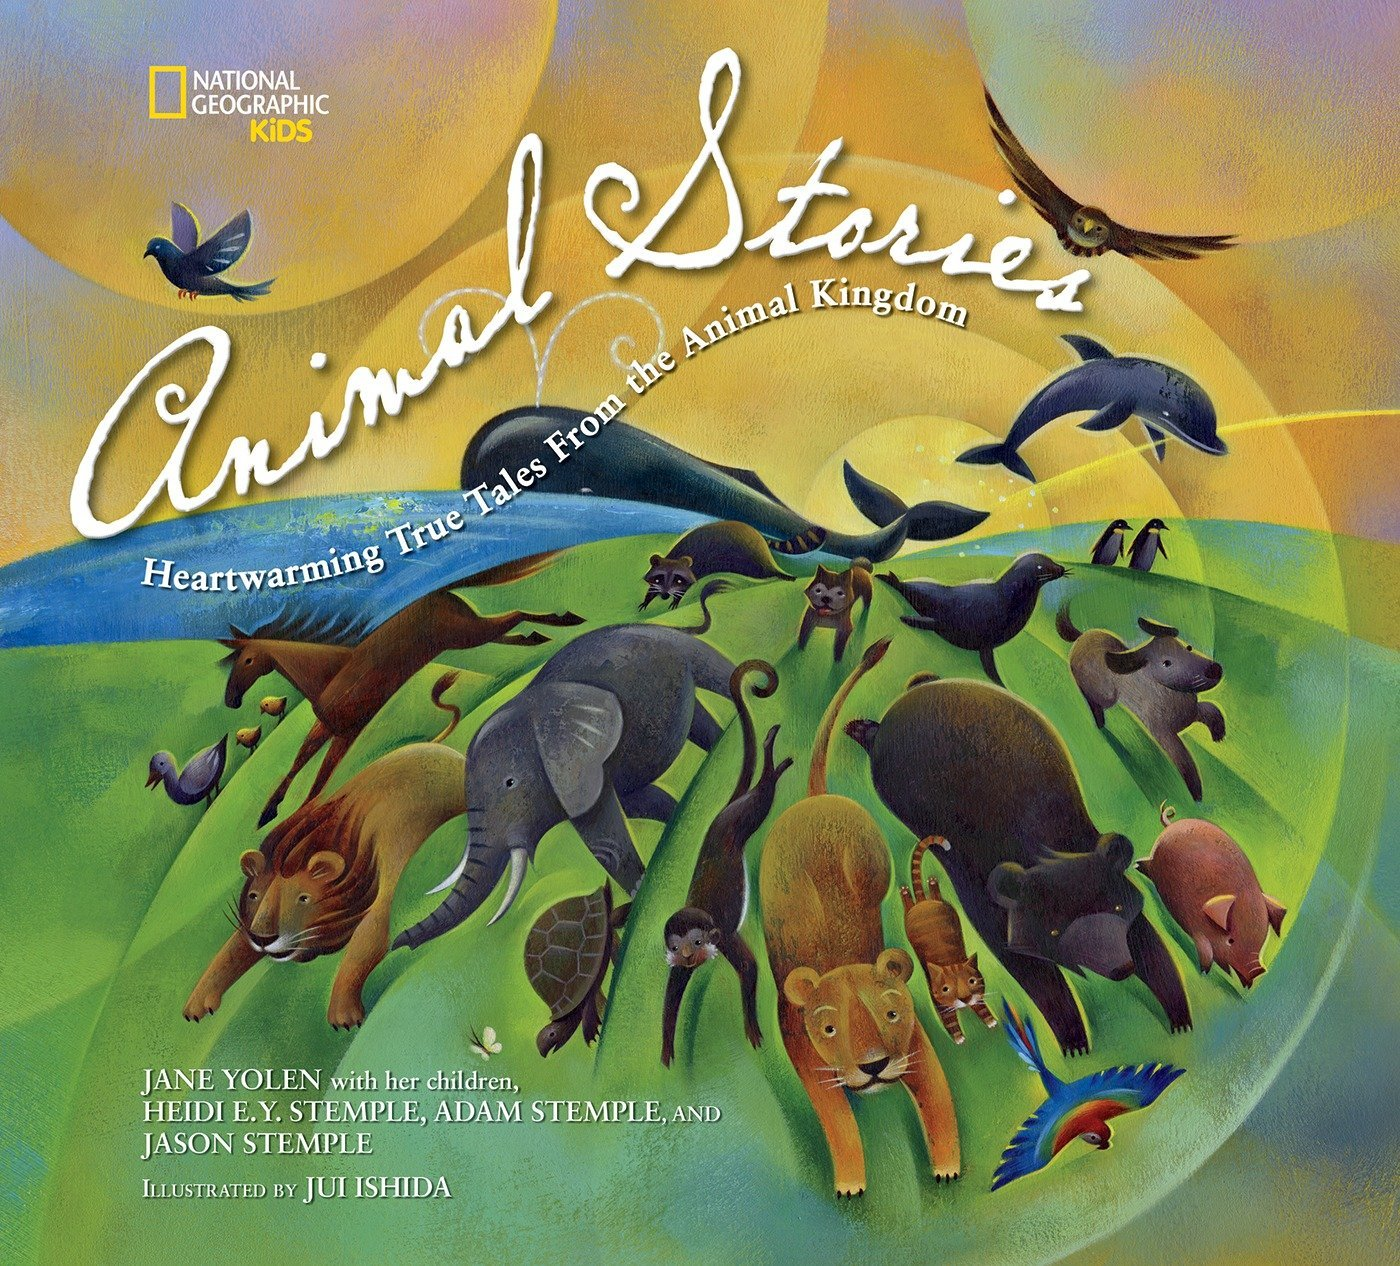 National Geographic Kids Animal Stories: Heartwarming True Tales from the Animal Kingdom PDF